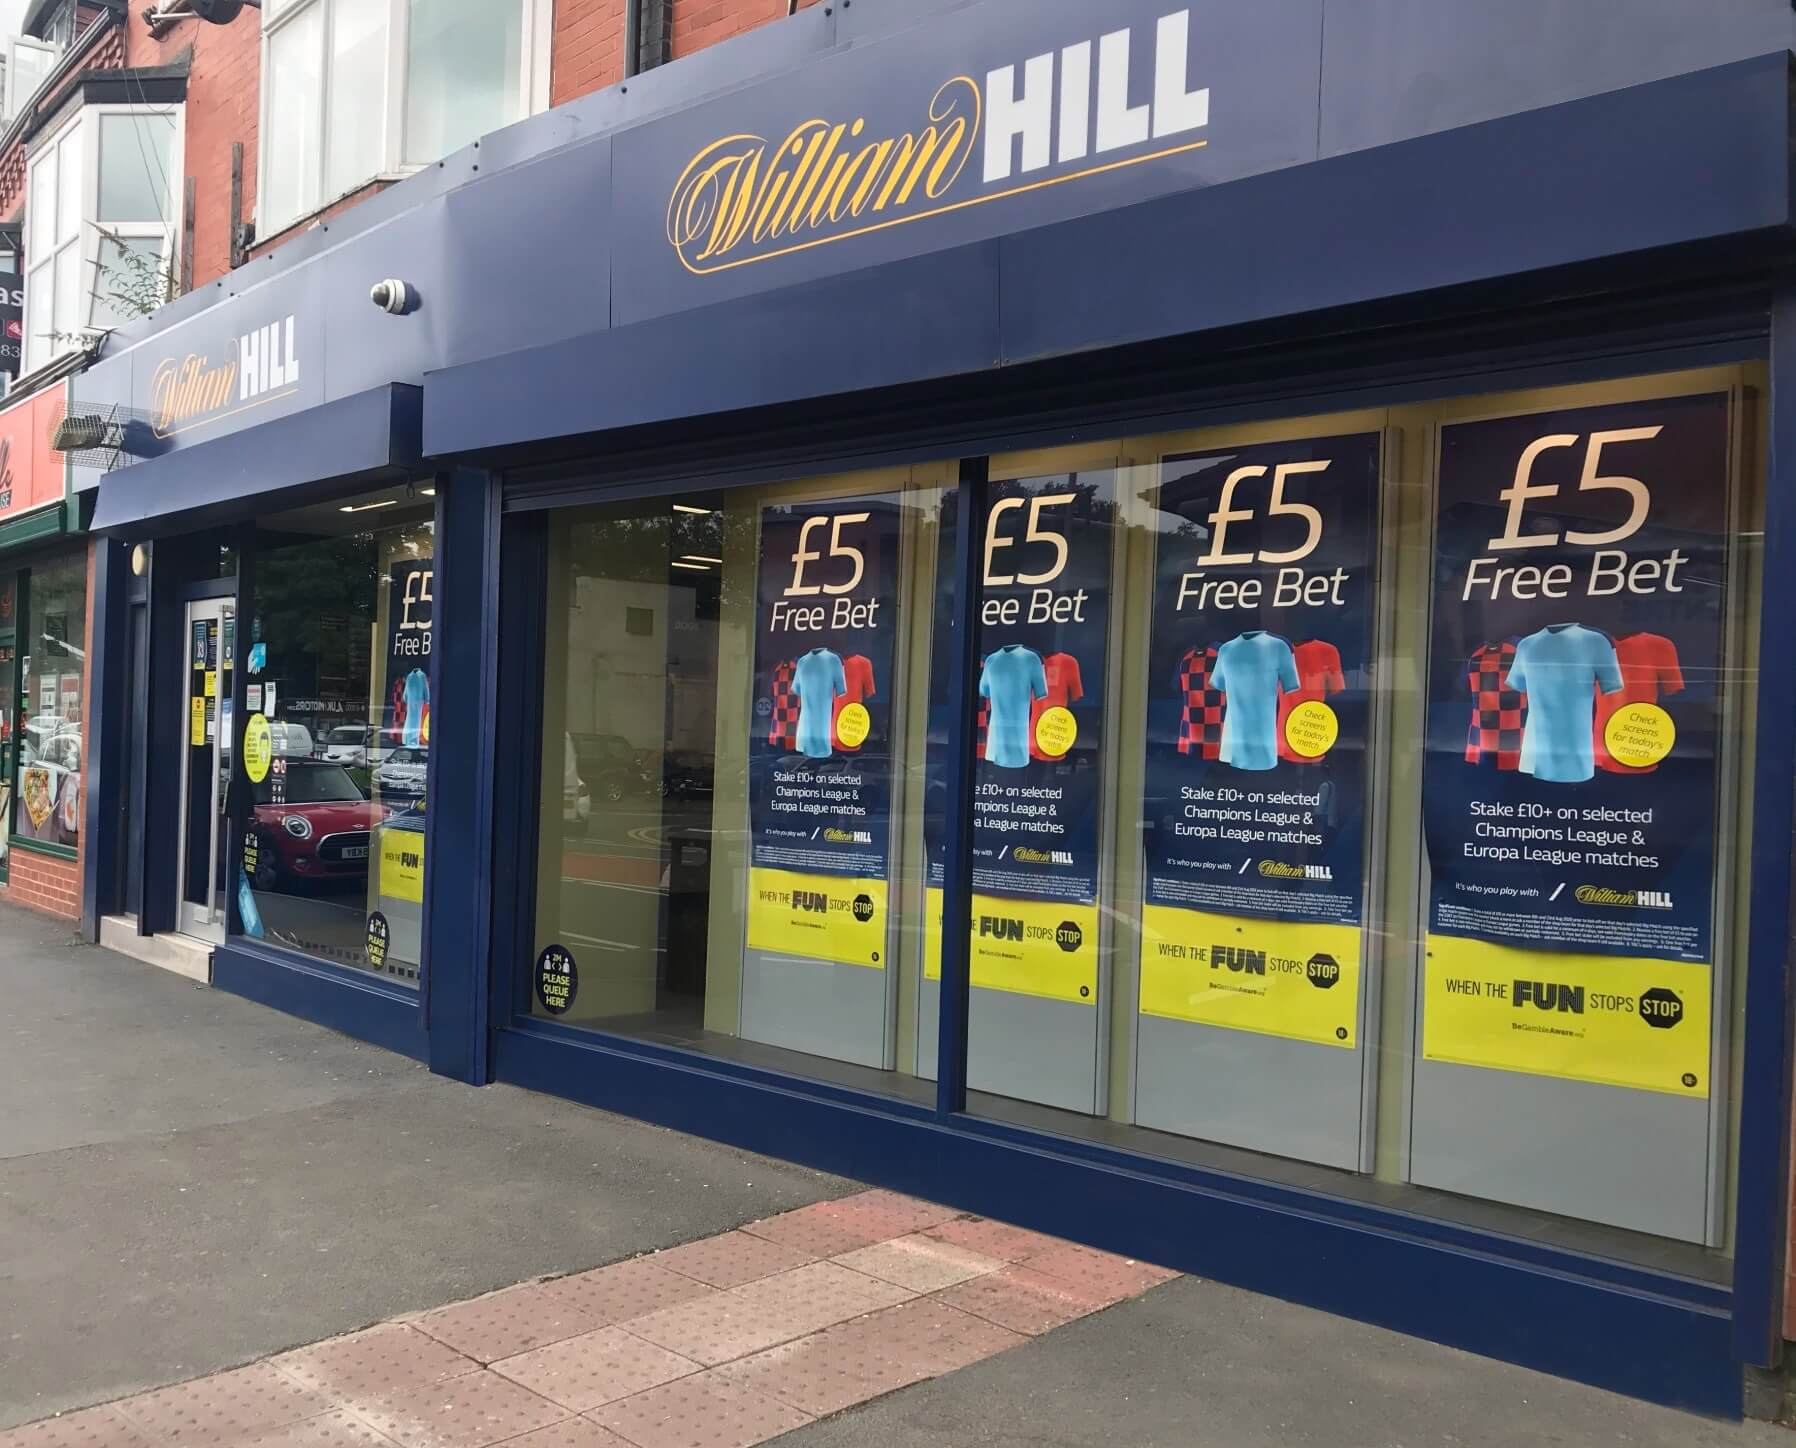 BoyleSports Want To Buy William Hill Shops